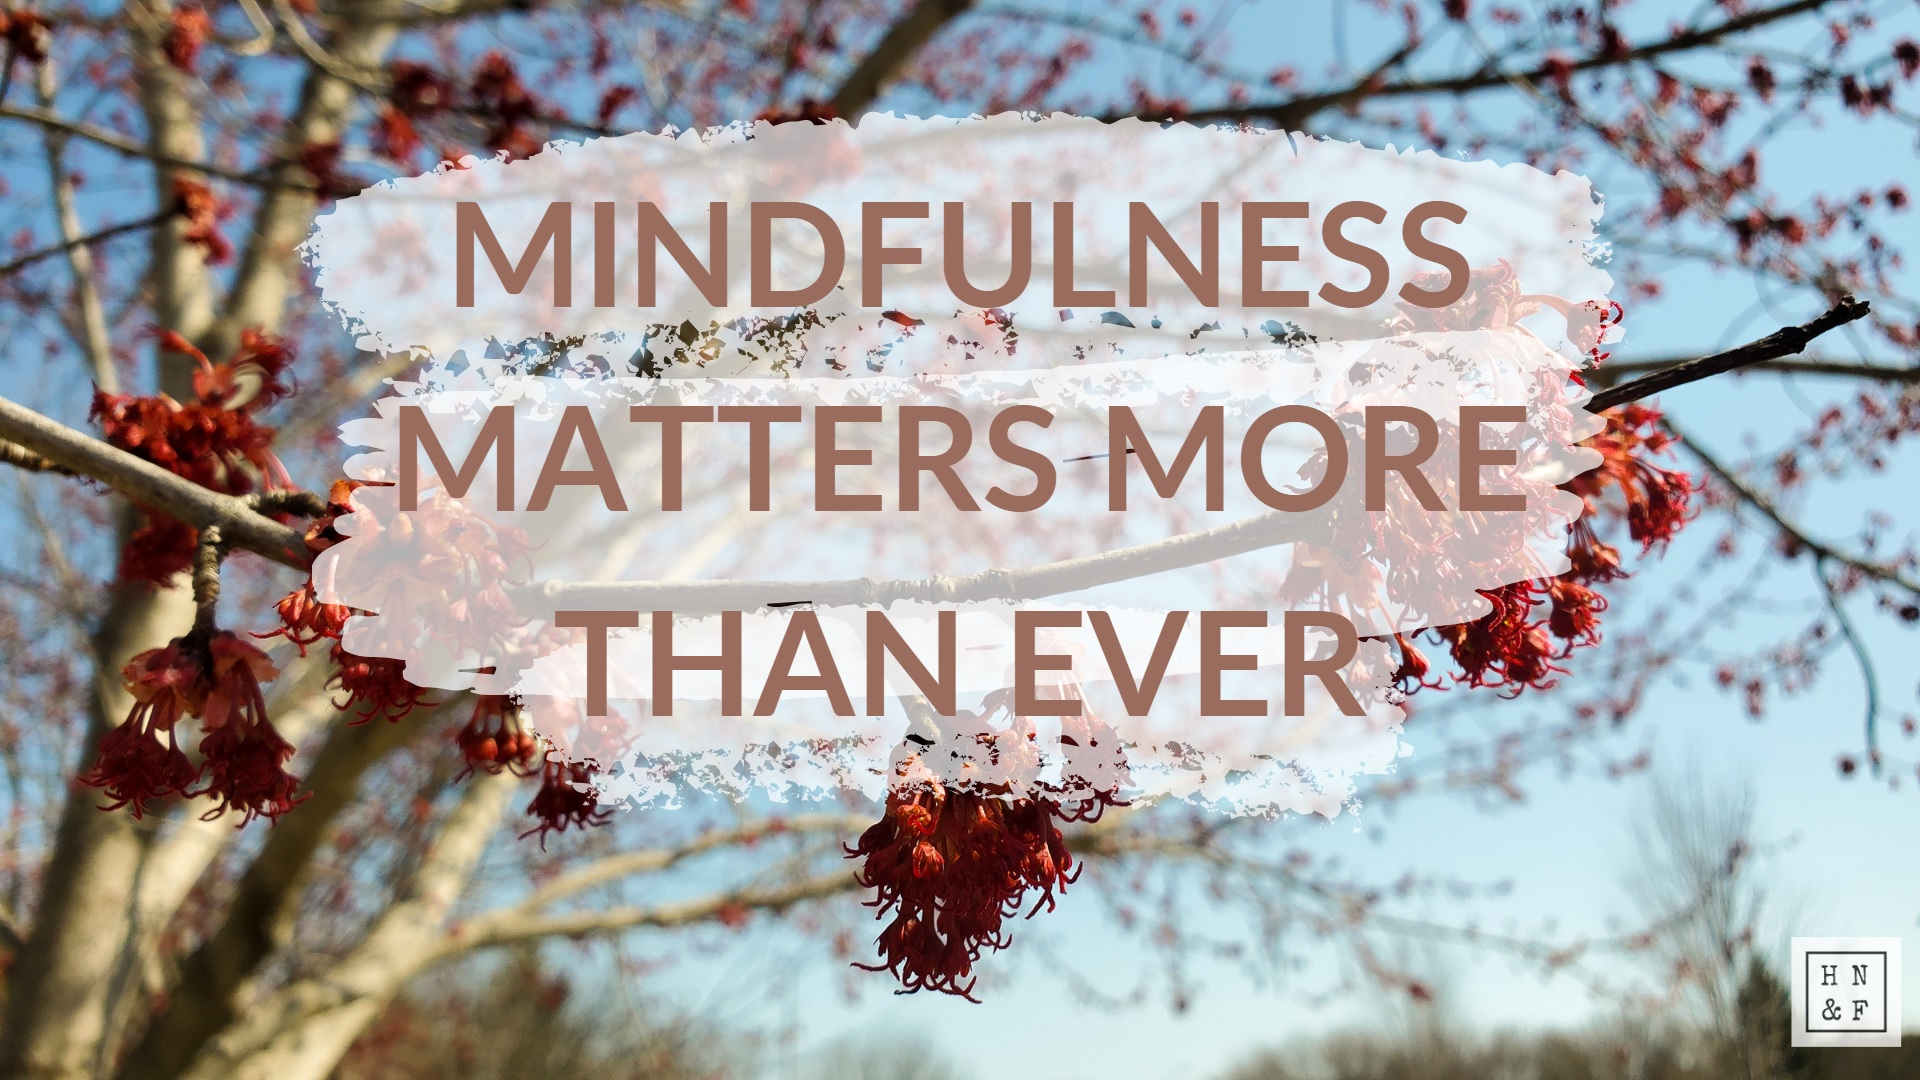 Mindfulness Matters More than Ever